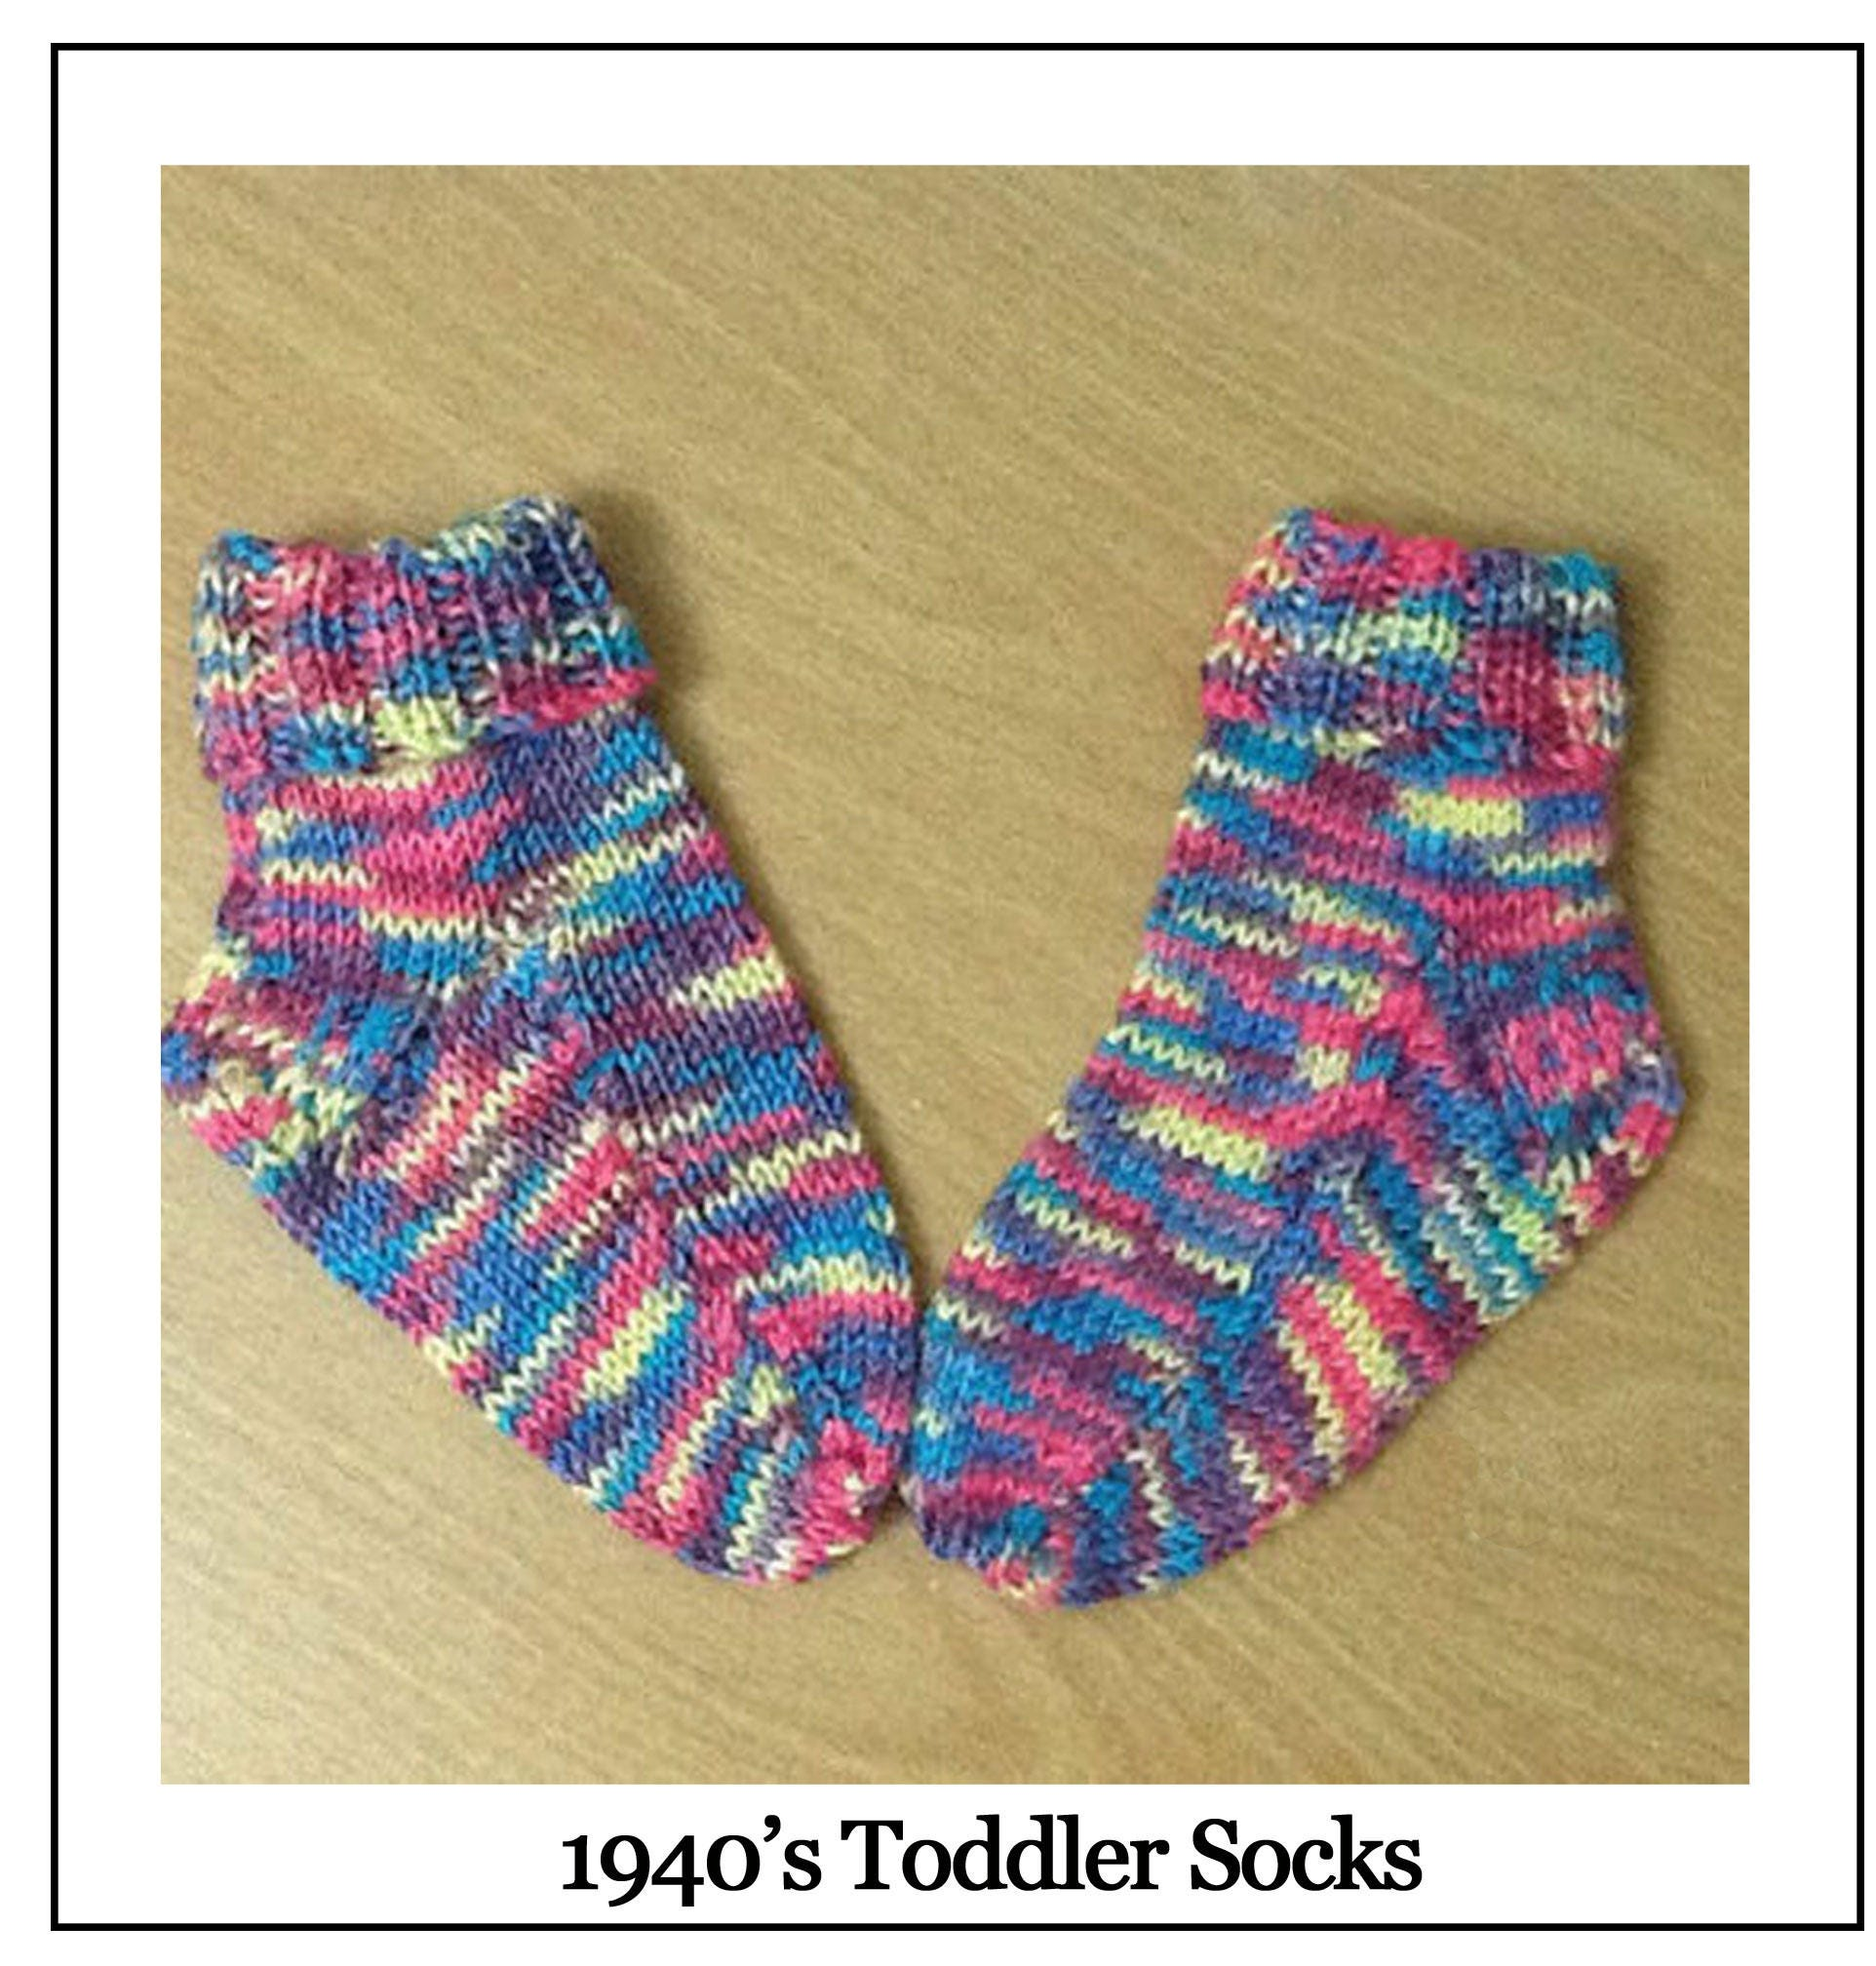 Toddlers socks 1940s vintage knitting pattern pdf knitting this is a digital file bankloansurffo Image collections